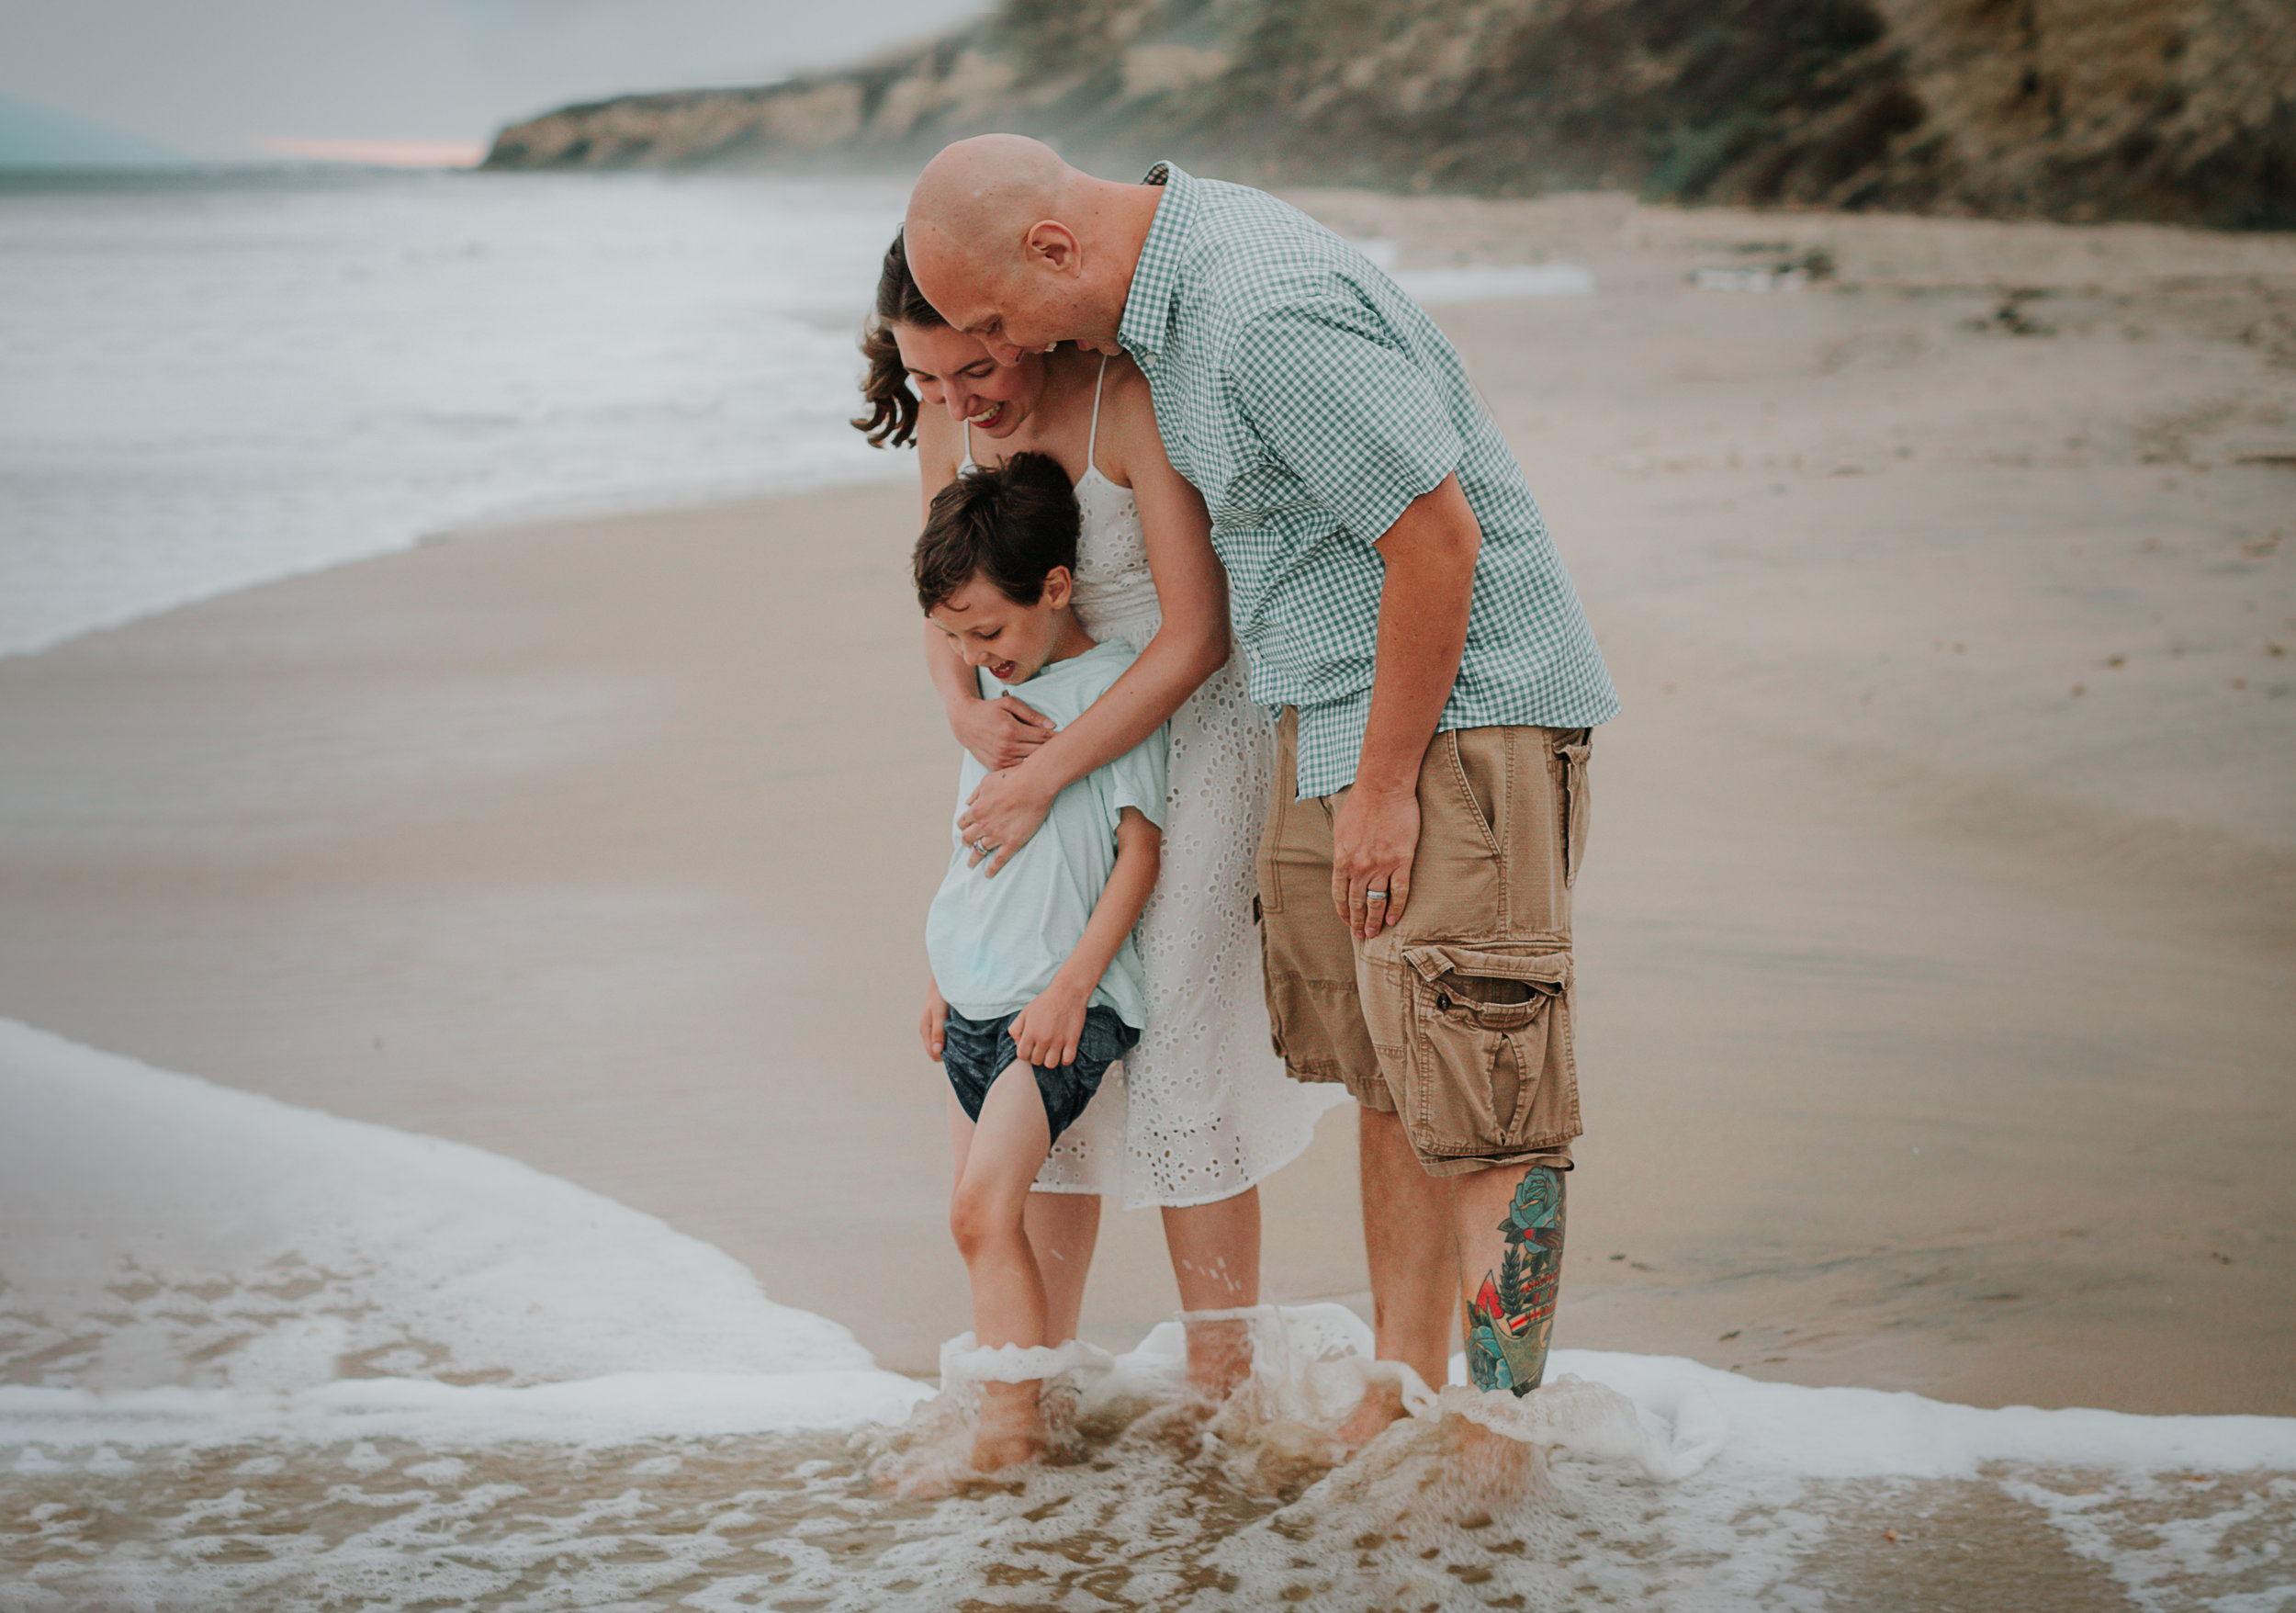 """Karyn, you captured our family in a way that told our story perfectly and changed the way we feel about having our pictures taken- we actually look forward to it now"". - Vanessa + Tom"